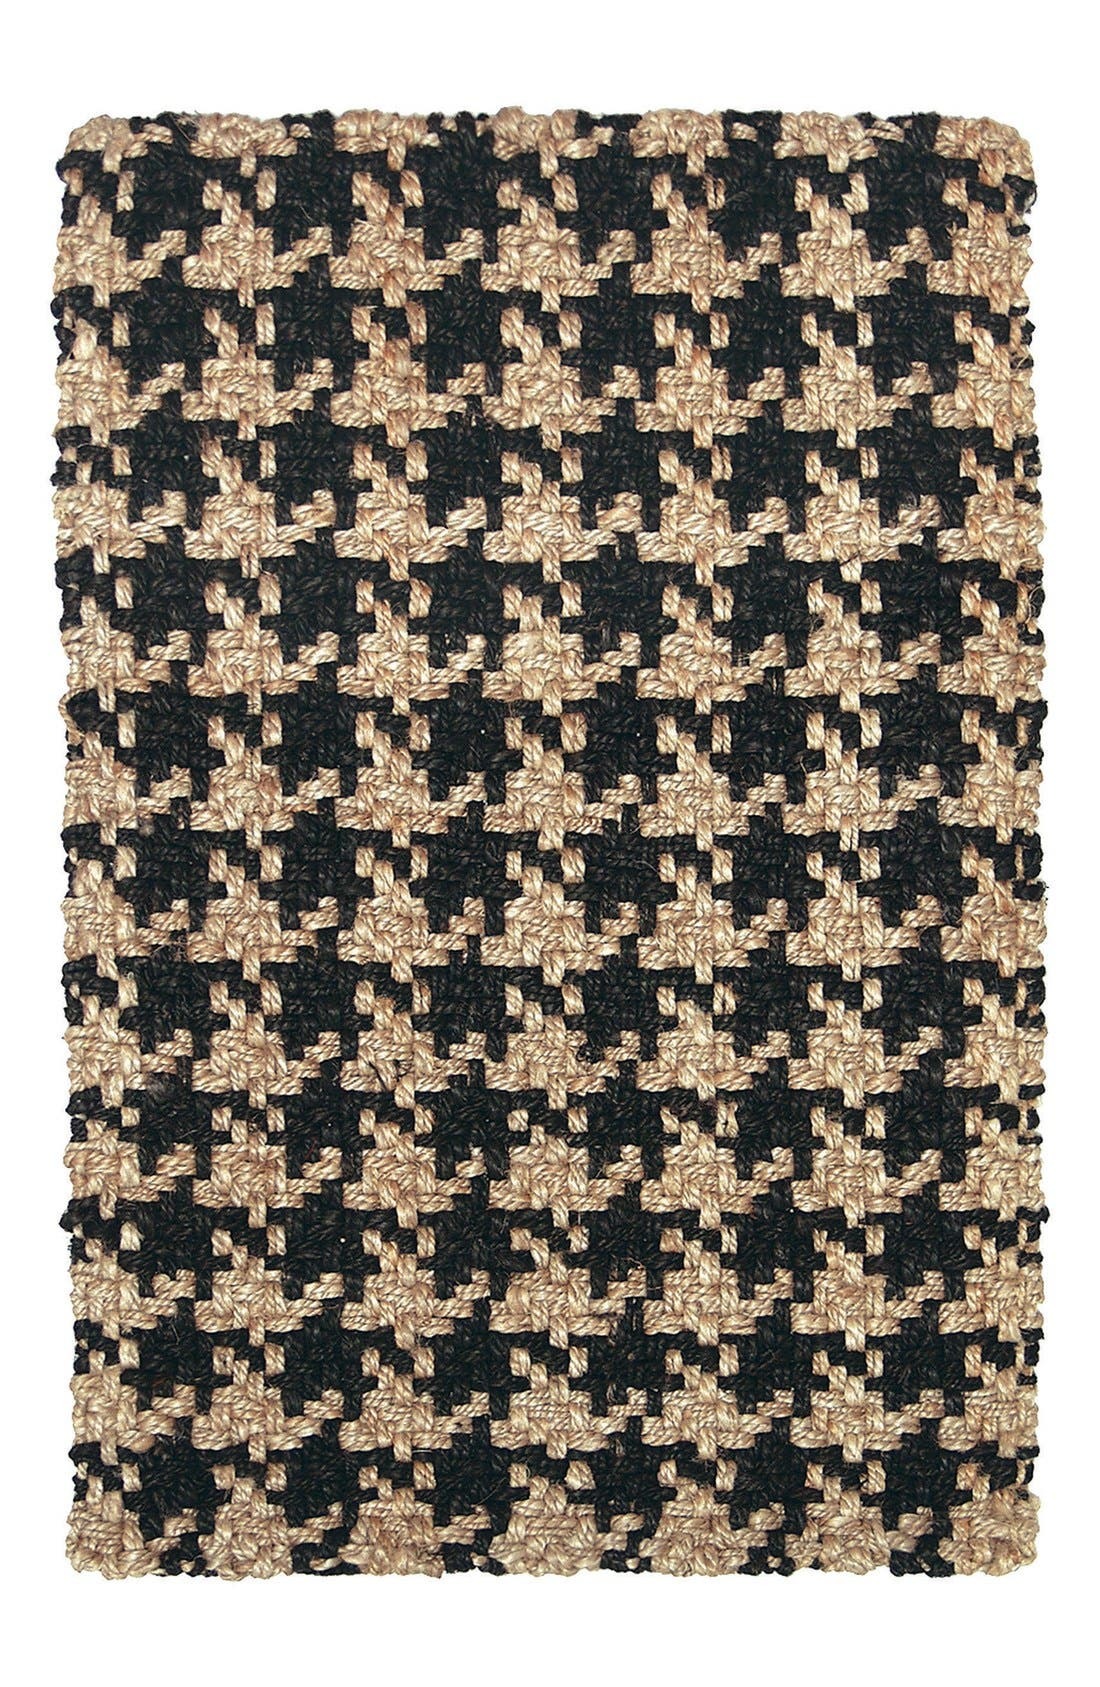 Houndstooth Rug,                             Main thumbnail 1, color,                             001